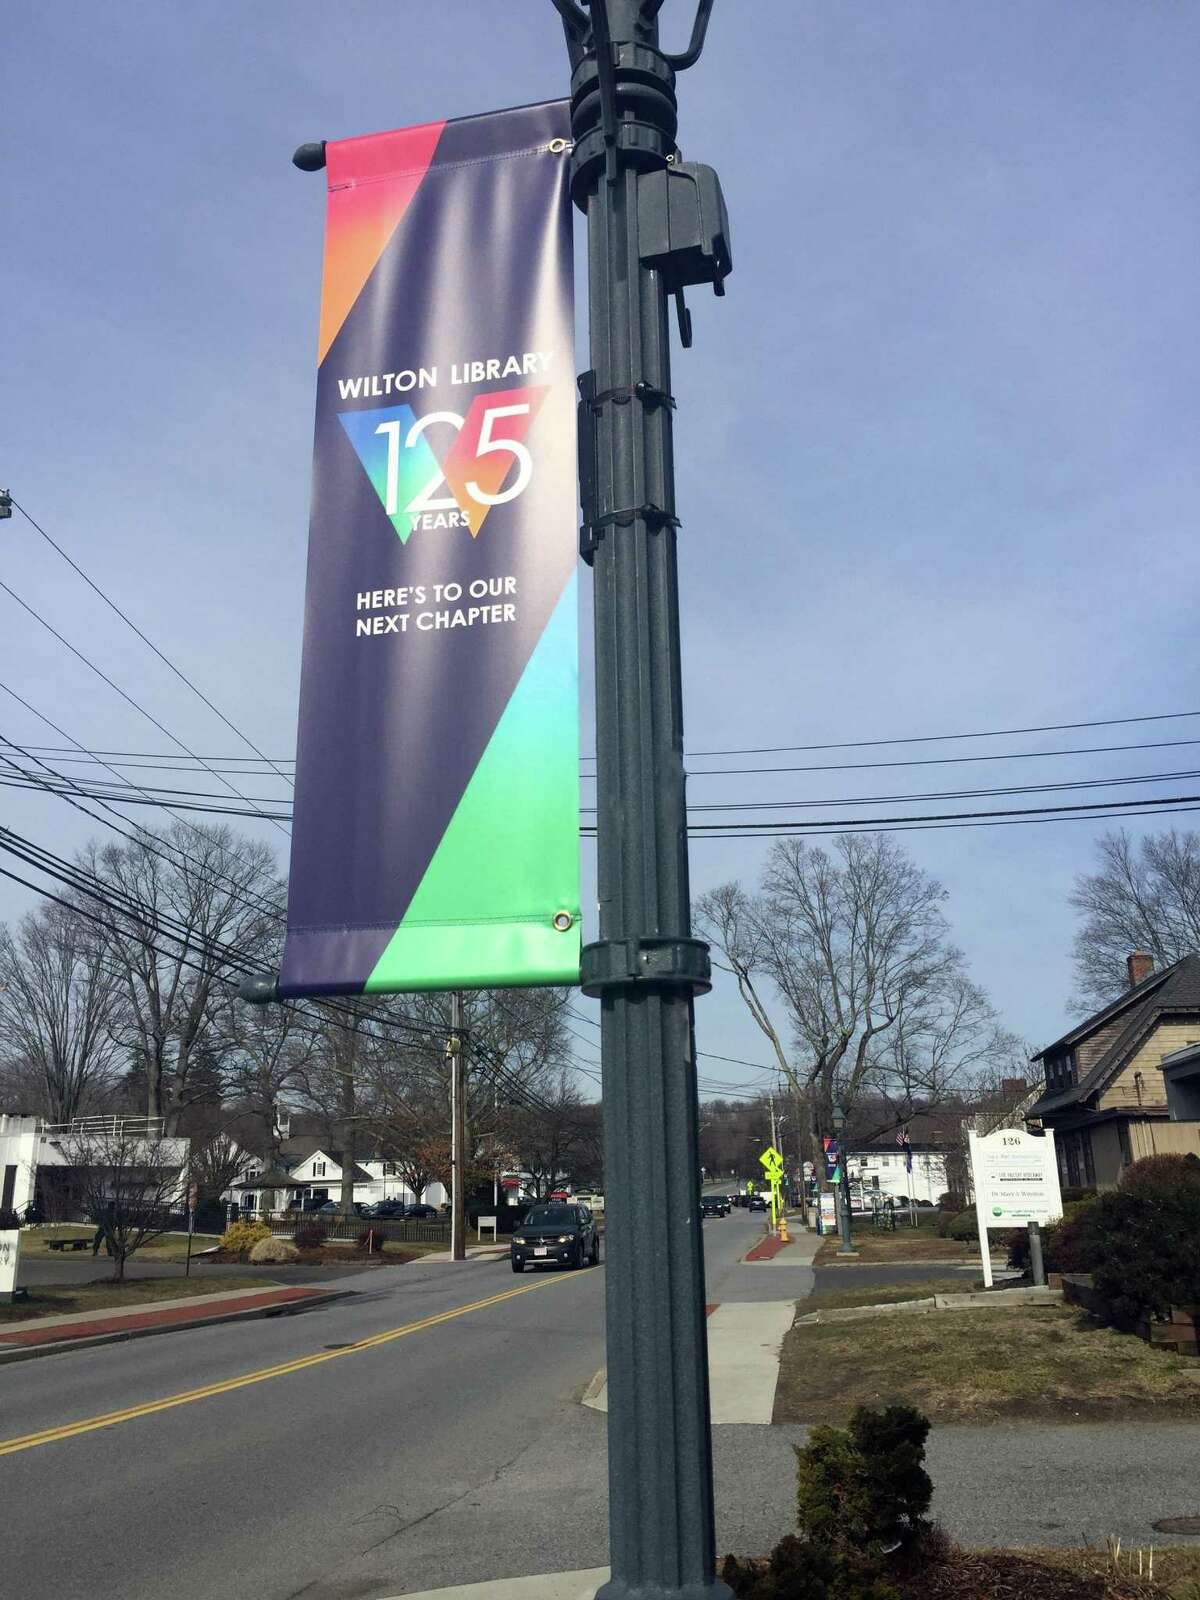 Banners have been placed on lamp posts throughout Wilton Center announcing the 125th anniversary of Wilton Library.